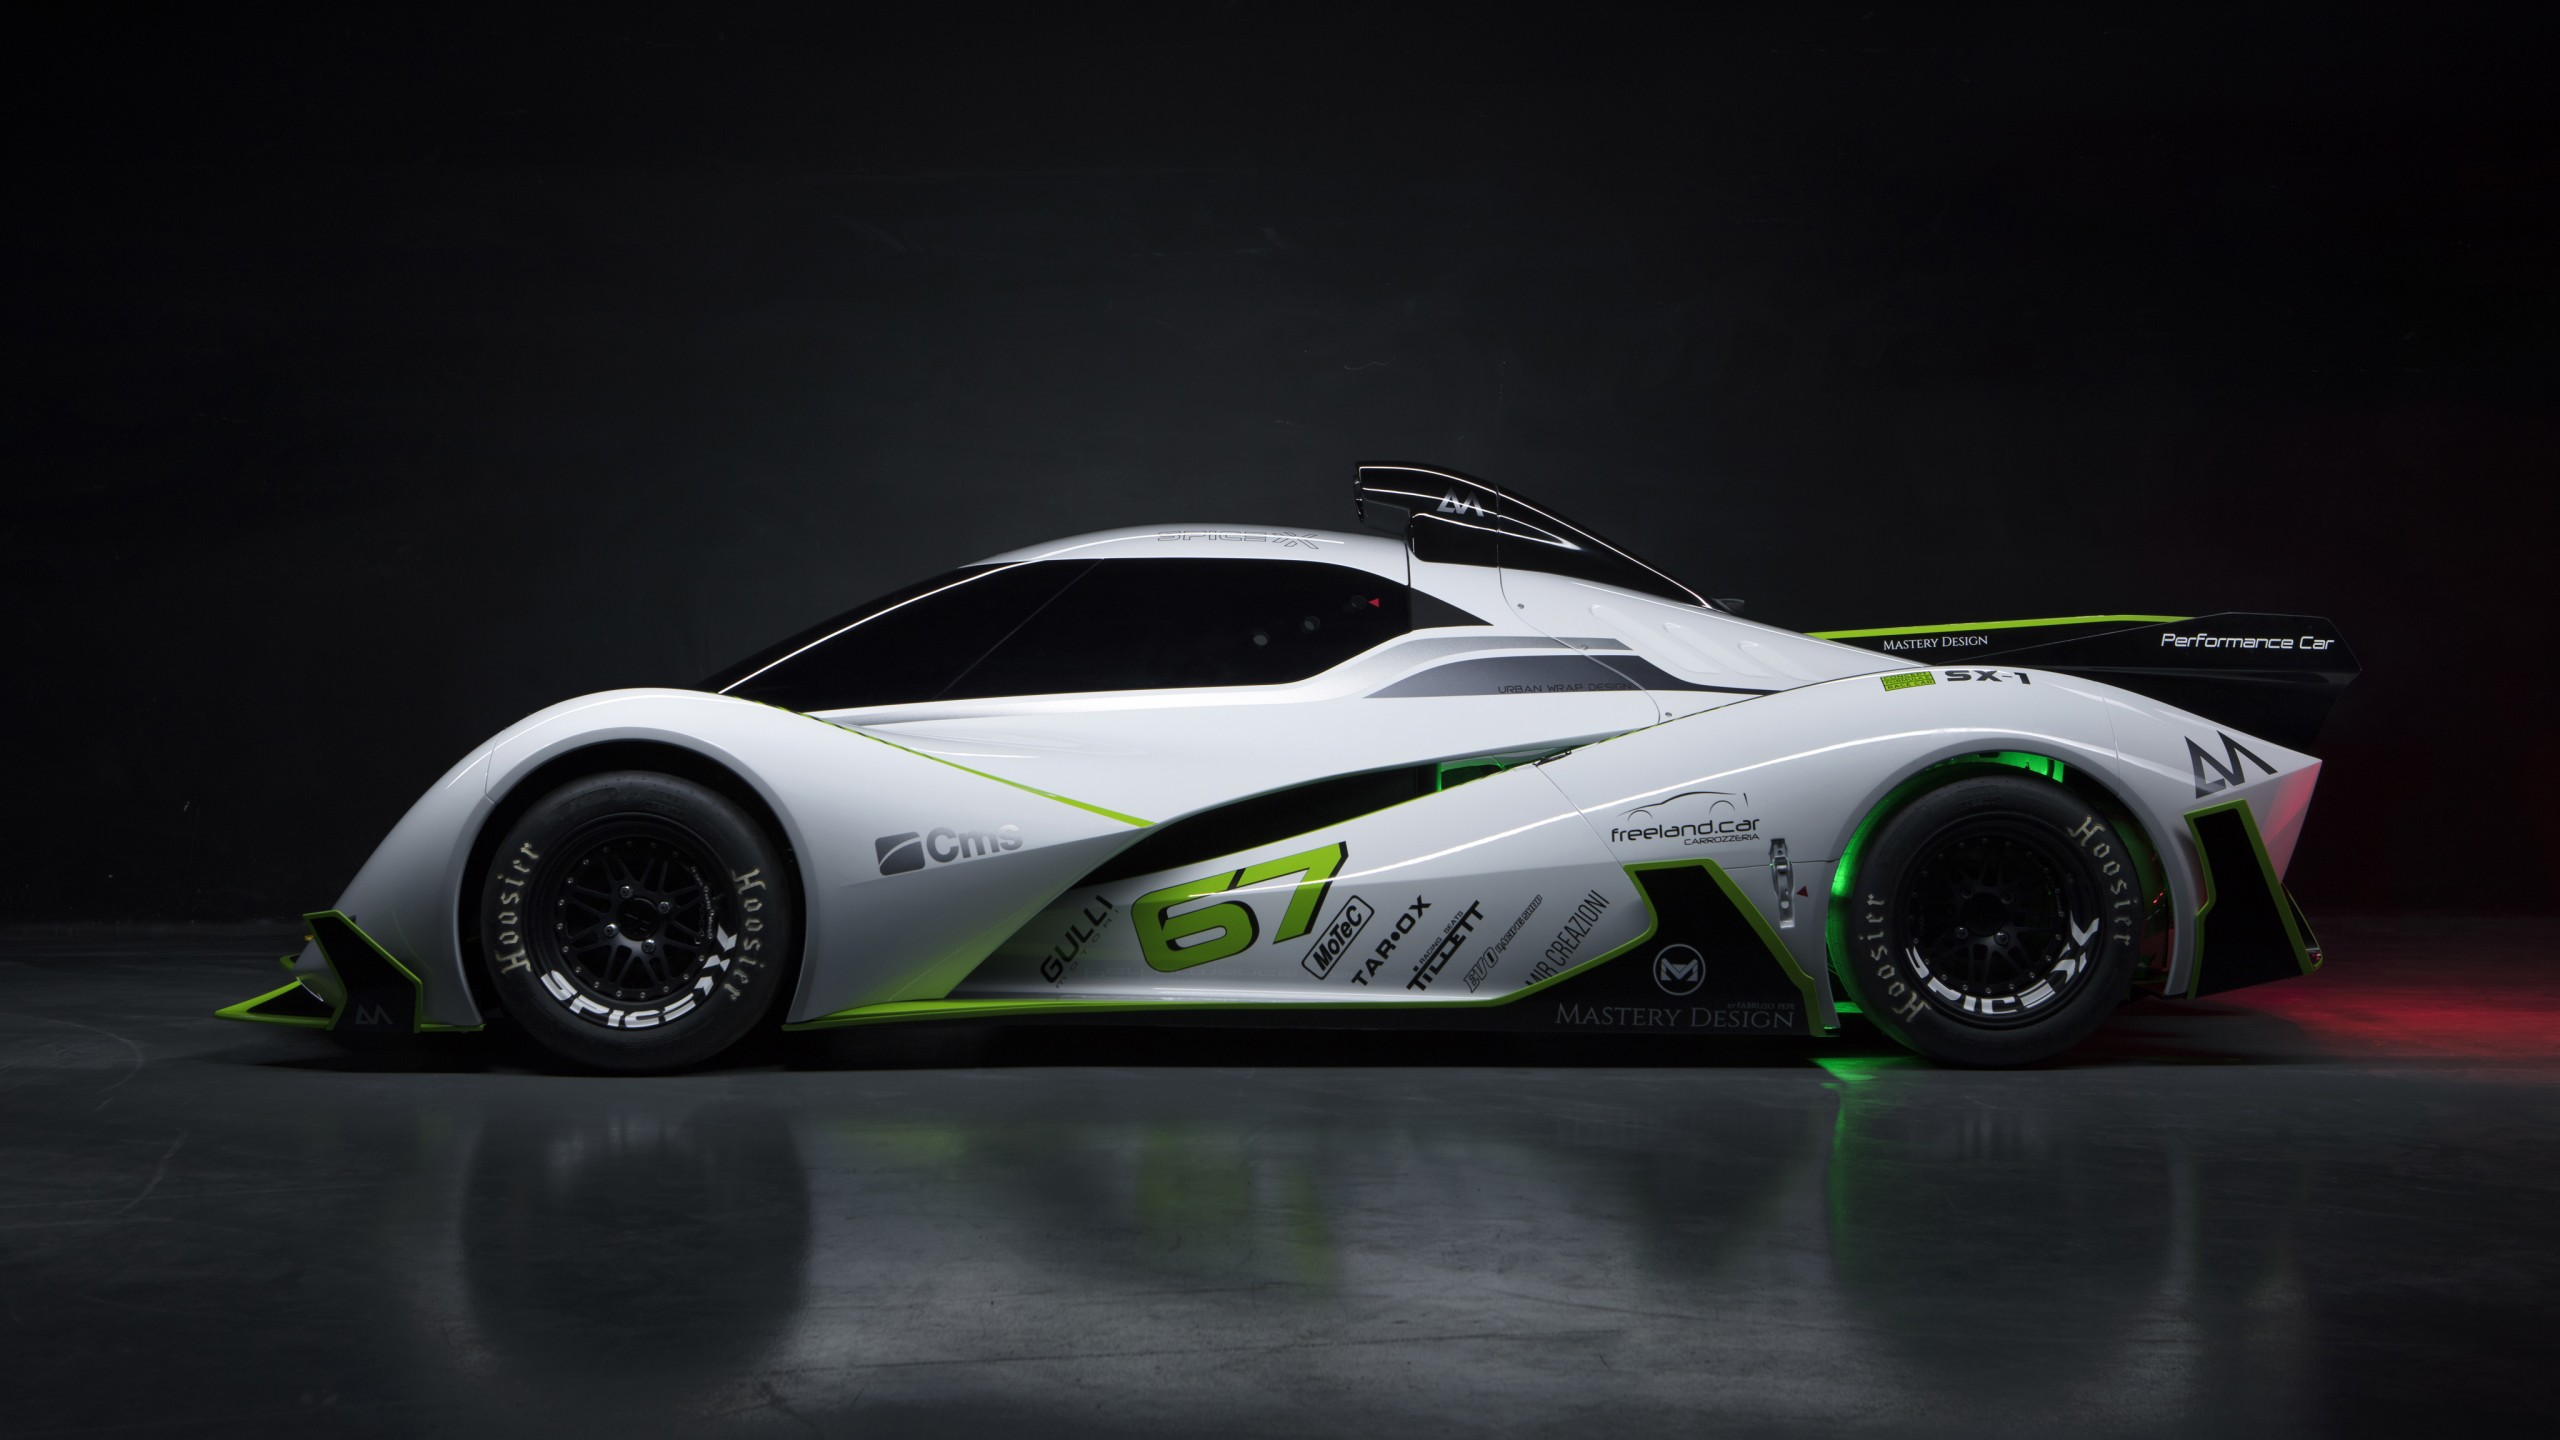 Race Car Wallpaper For Iphone Spice X Concept Electric Racing Car 4k 2 Wallpaper Hd